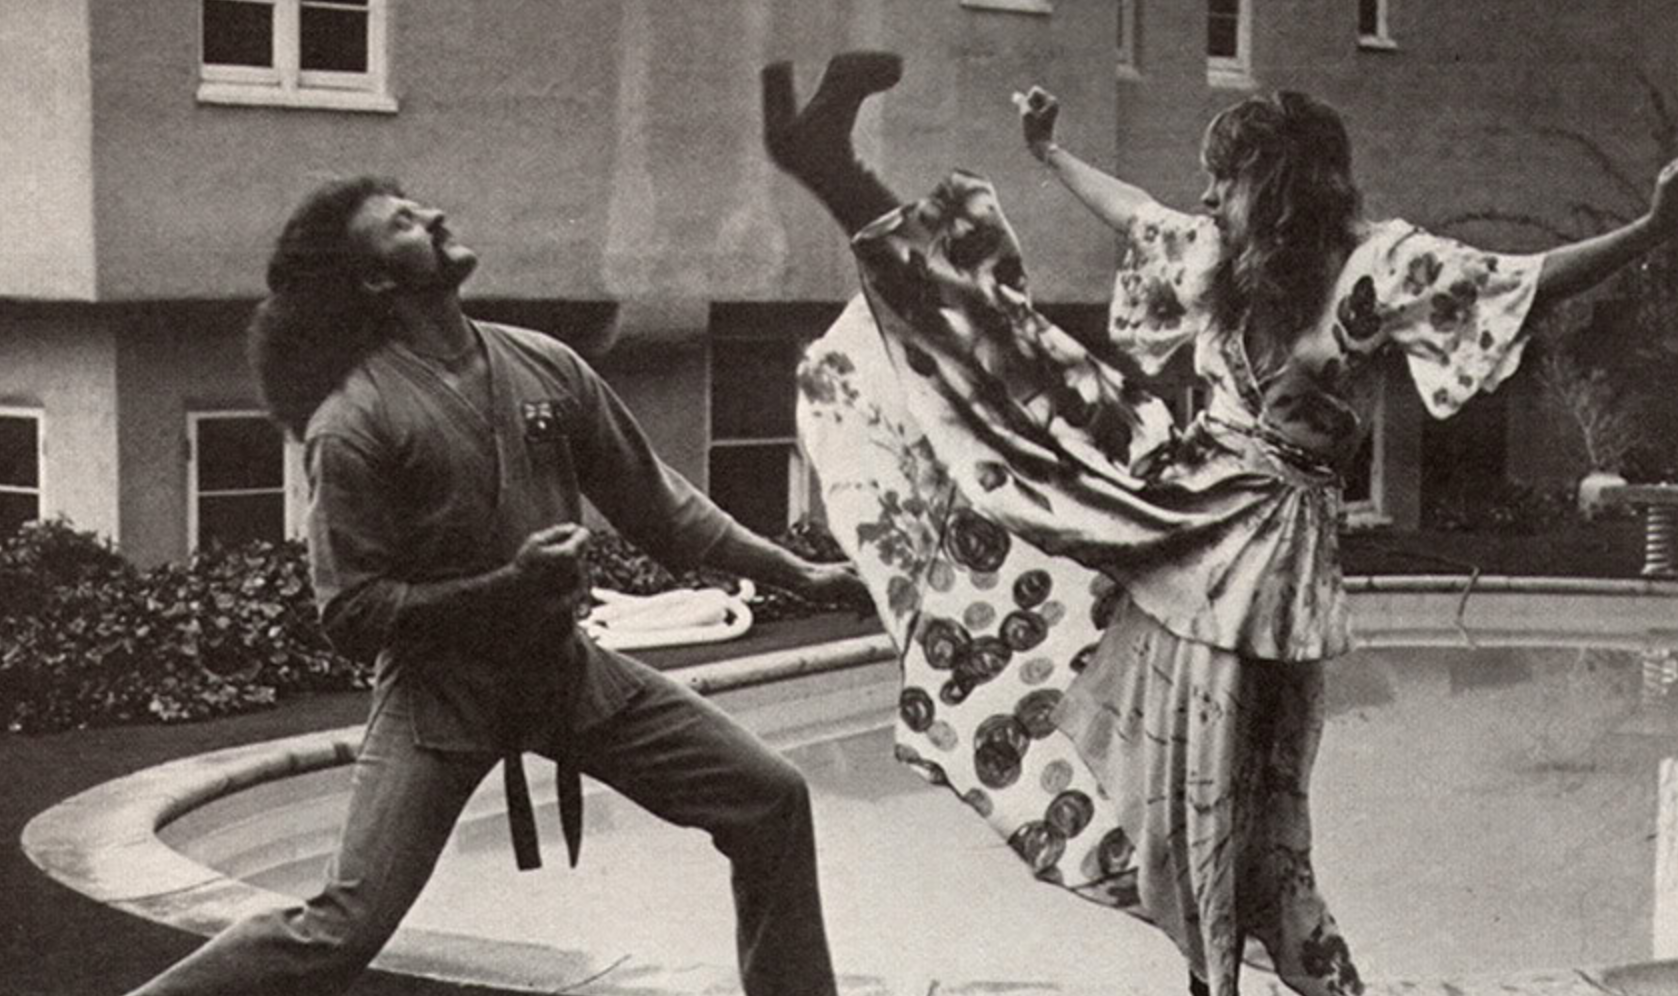 "Stevie Nicks ""Shows Us How to Kick Ass in High-Heeled Boots"" in a 1983  Women's Self Defense Manual 